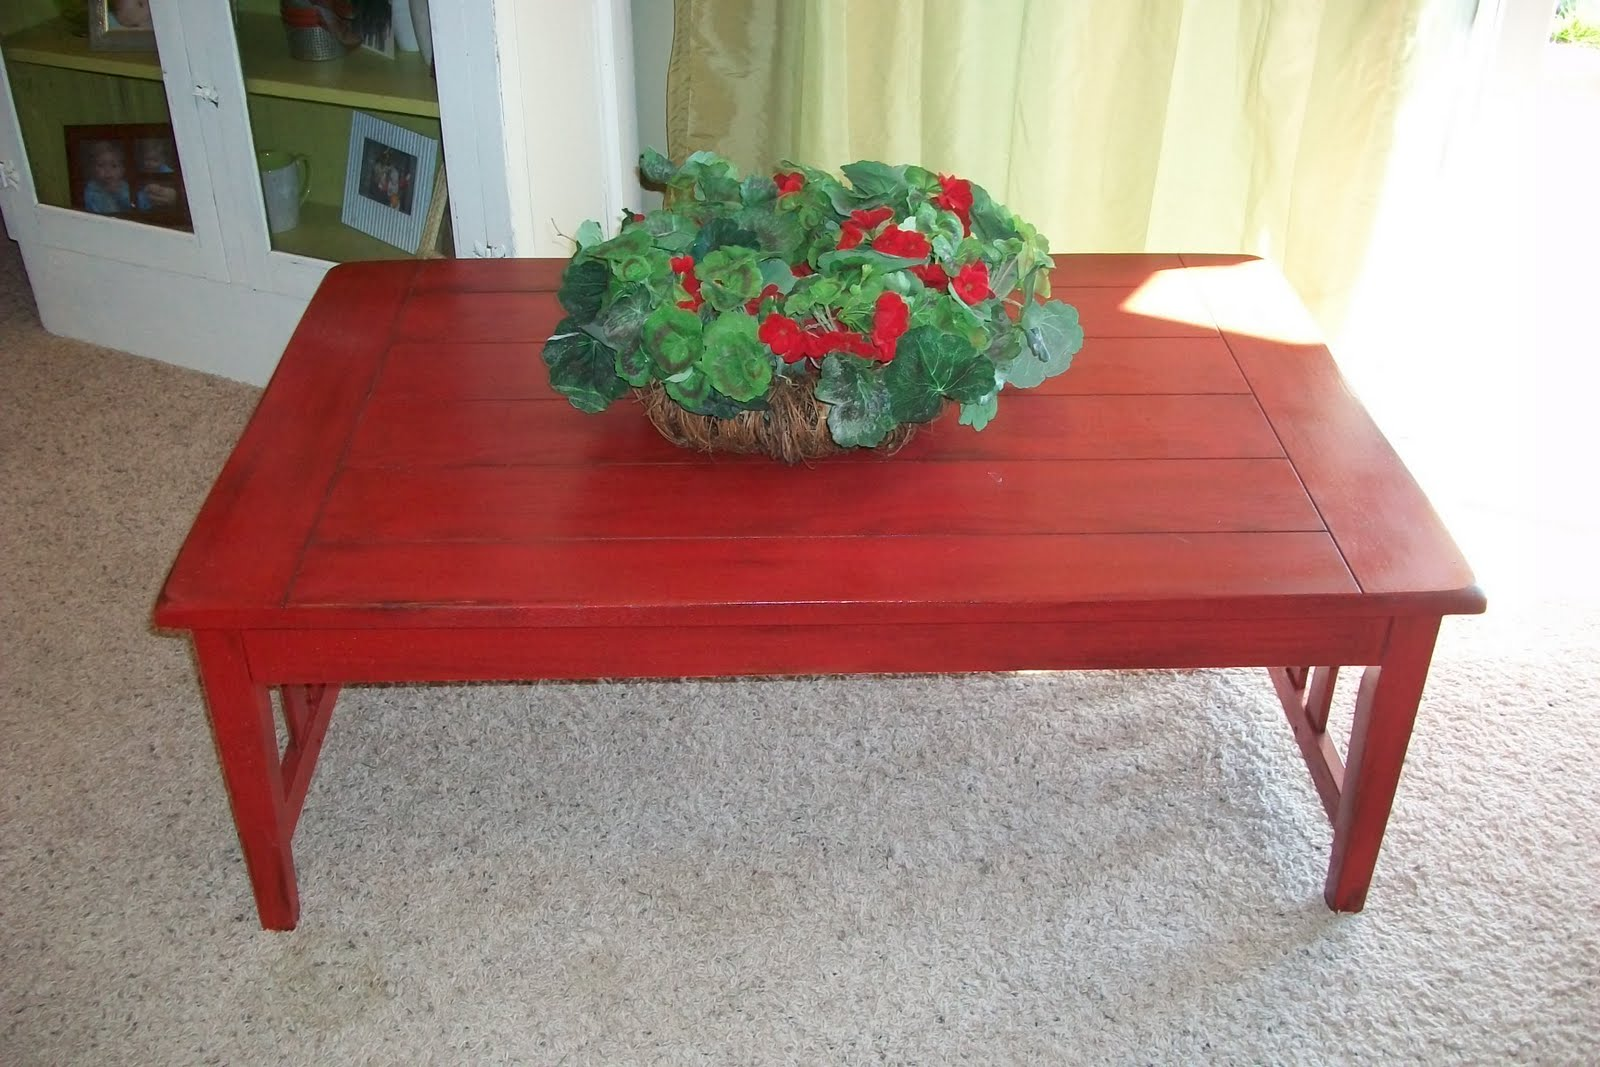 Ary anns place red mission style coffee table sold red mission style coffee table sold geotapseo Image collections